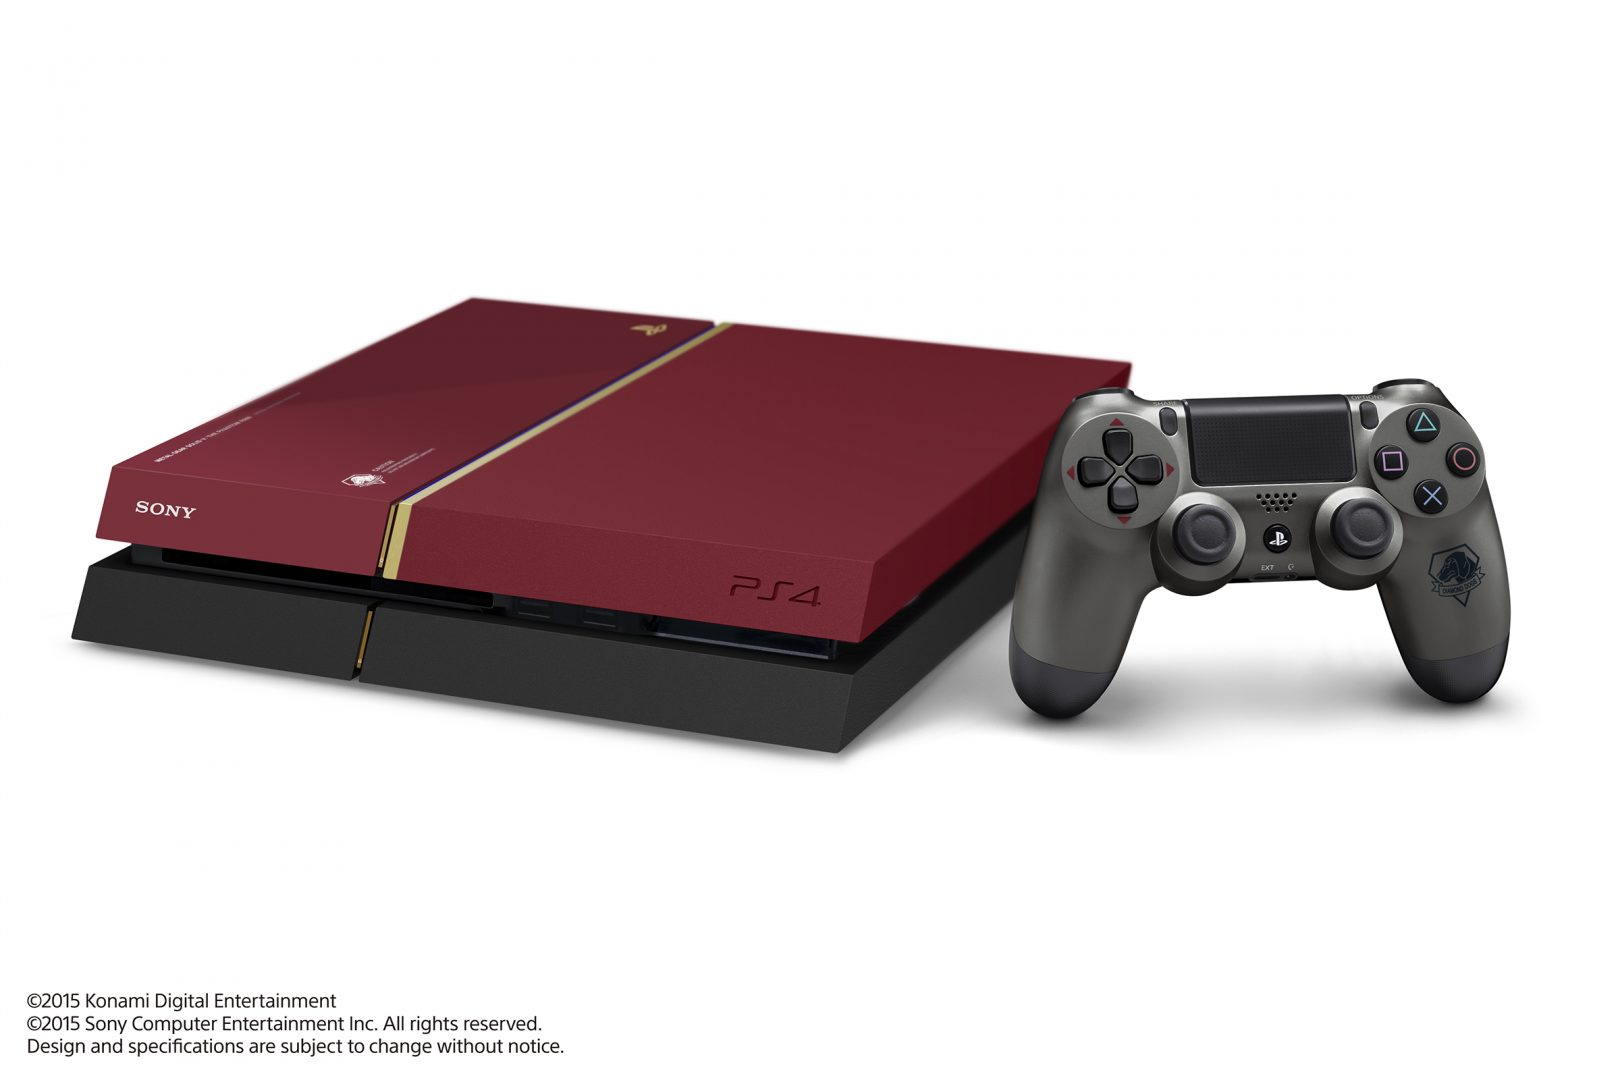 Metal Gear Solid V: The Phantom Pain PS4 Bundle Confirmed For A UK Release